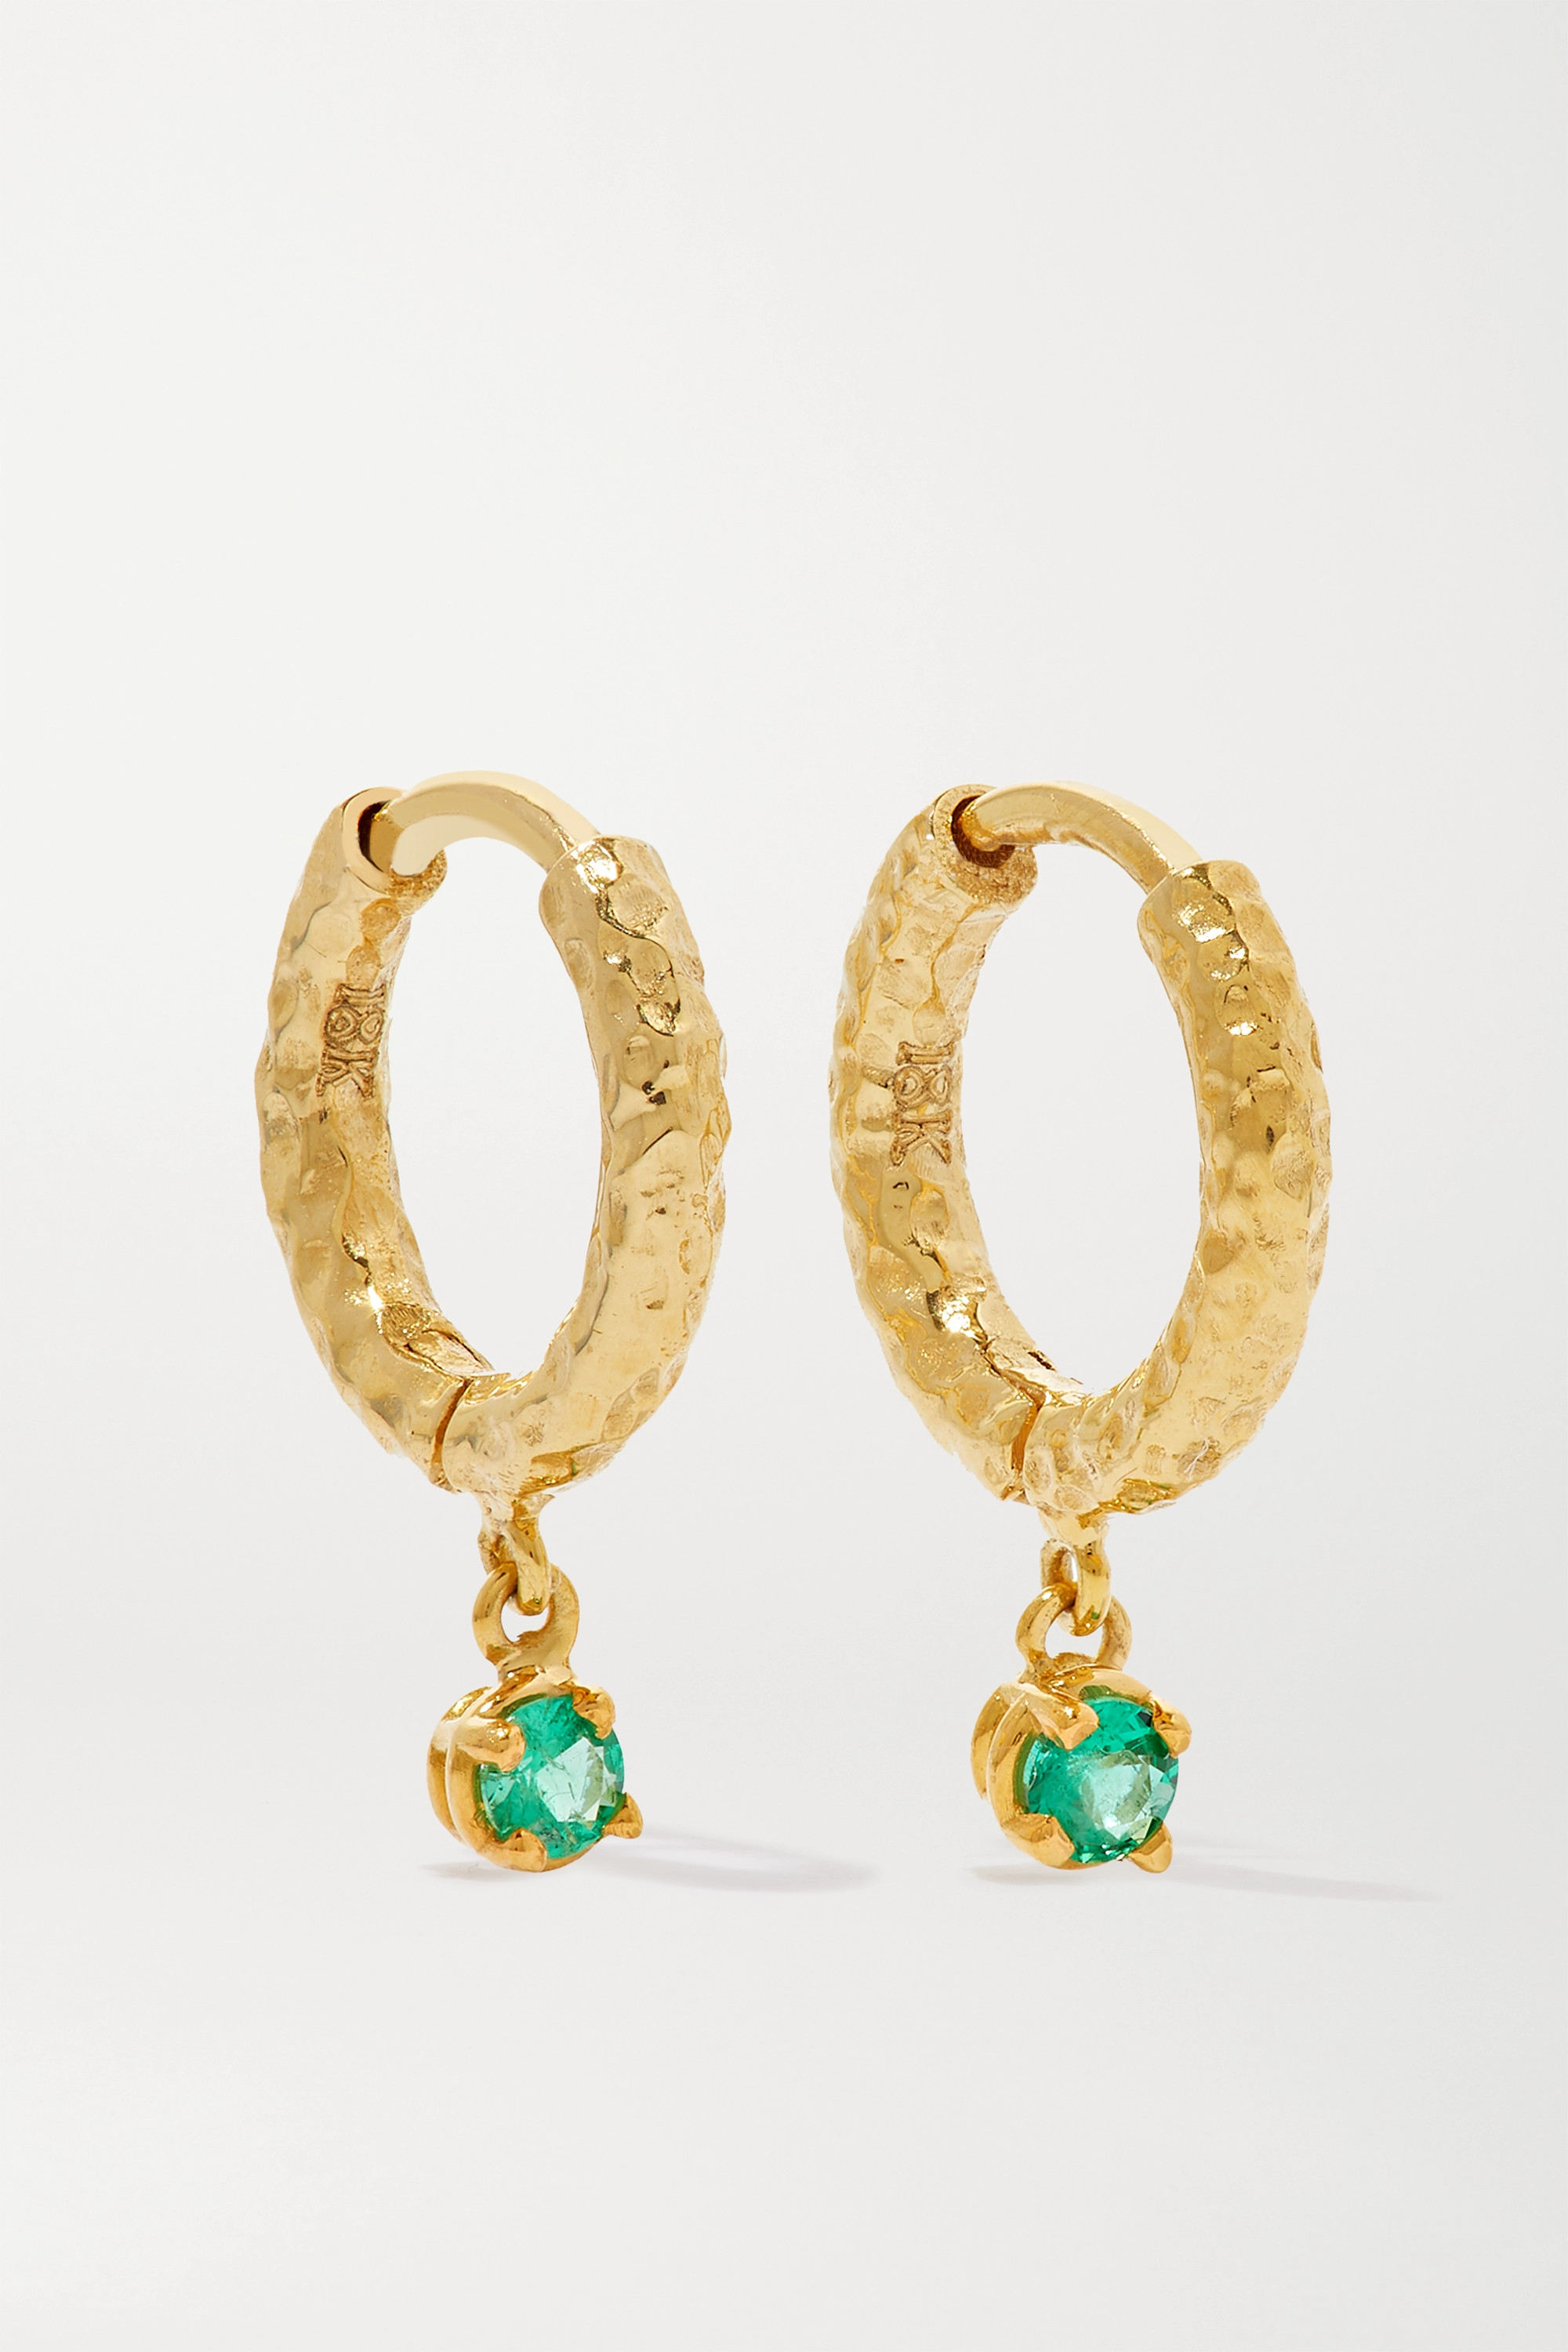 Octavia Elizabeth + NET SUSTAIN Micro Gabby 18-karat recycled gold emerald hoop earrings